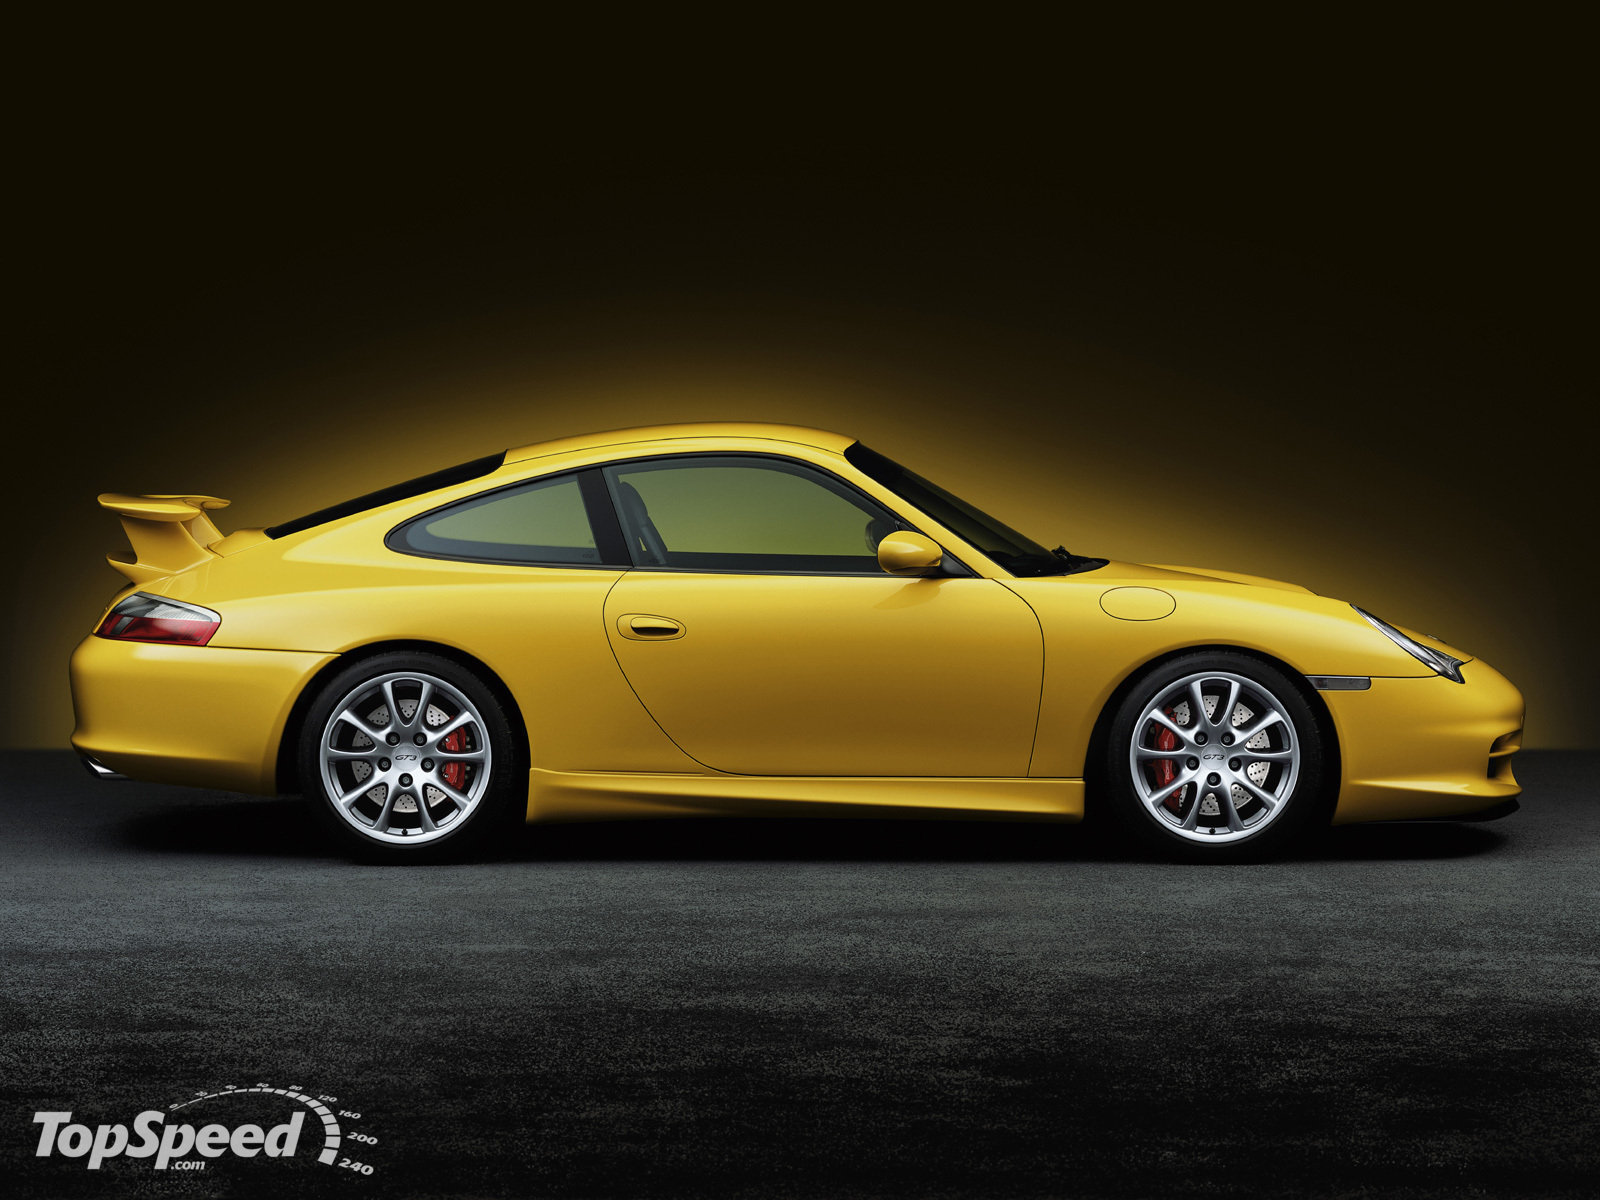 porsche 911 turbo (996) 2000 wallpaper #6